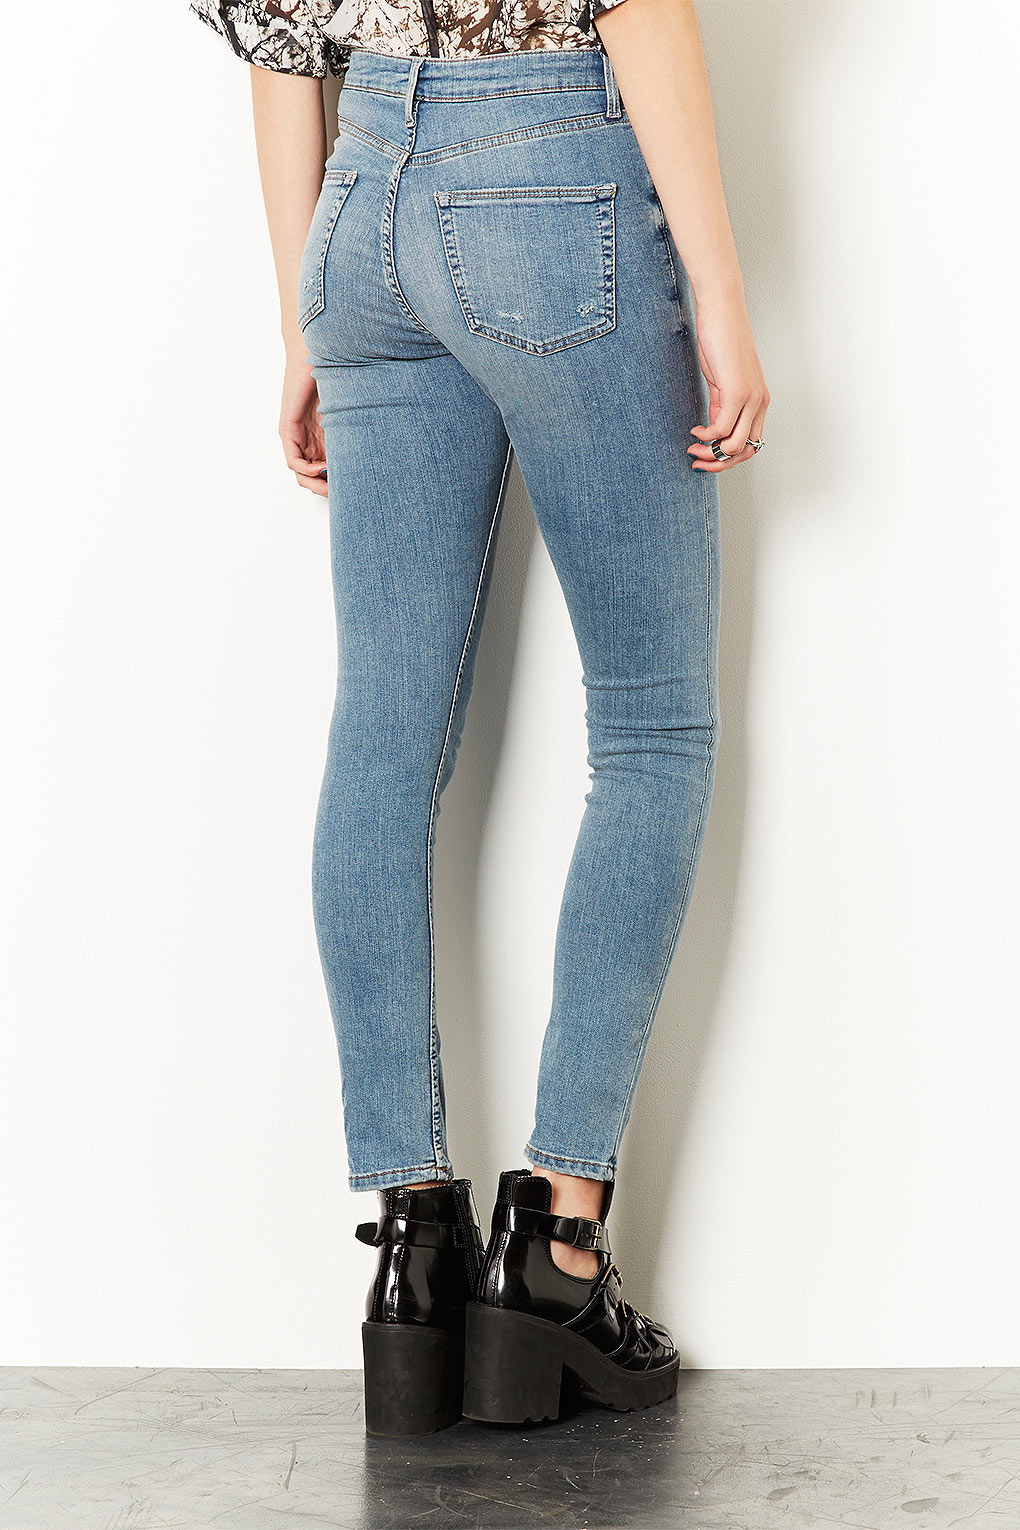 Topshop Moto Light Vintage Jamie High Waisted Jeans in Blue | Lyst